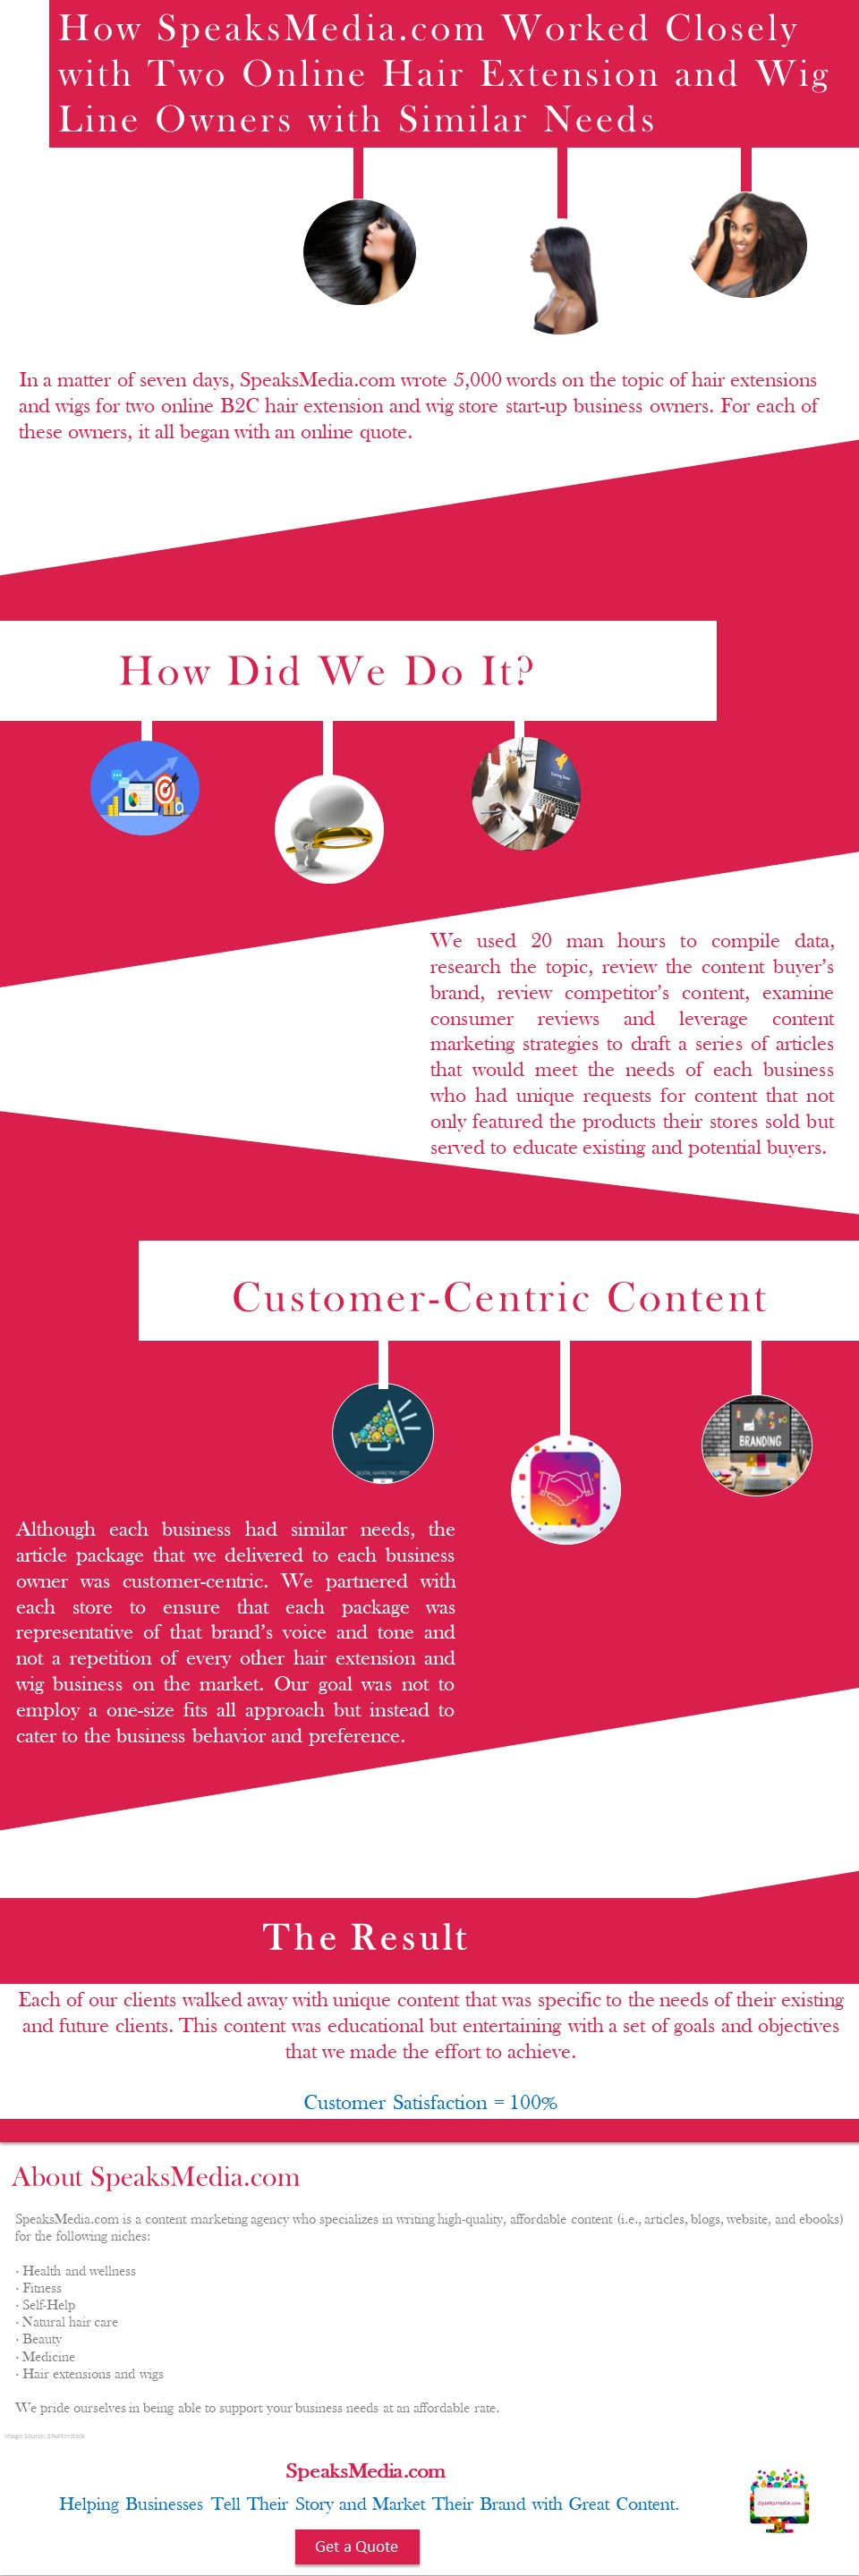 Content marketing requires us to tell the same story multiple times using the customer's brand and voice.